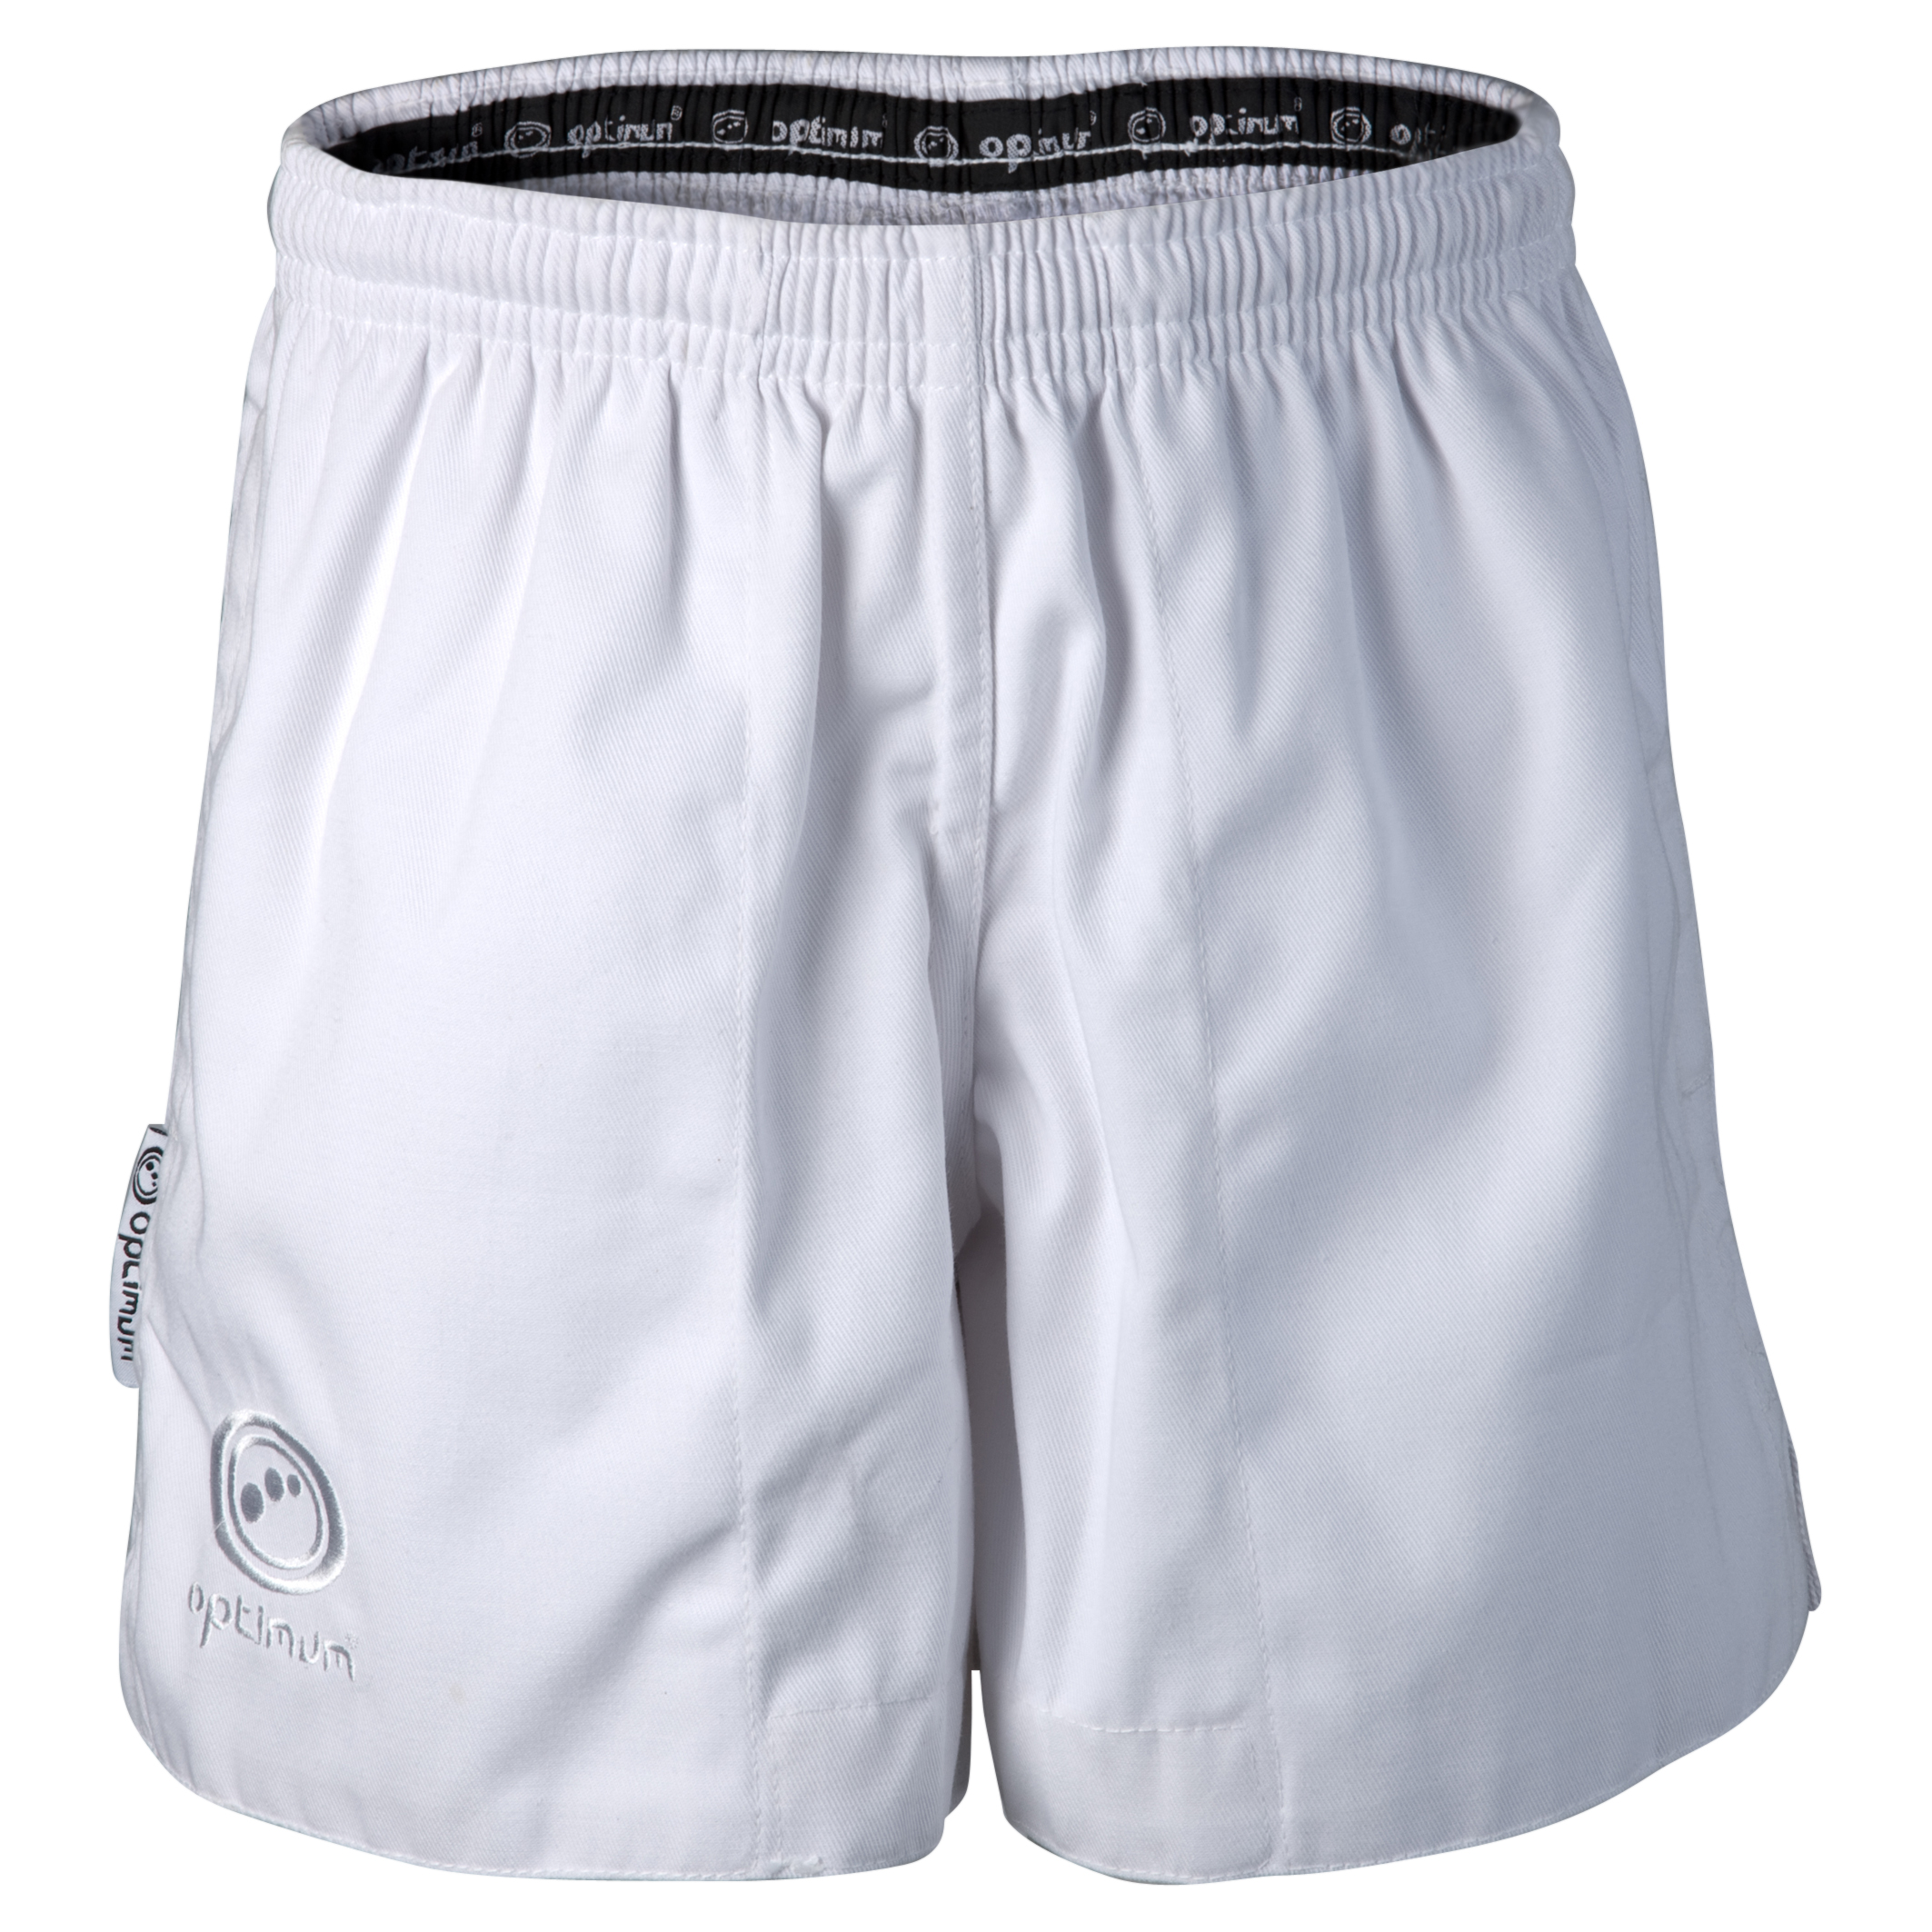 Optimum Auckland Rugby Short - White.